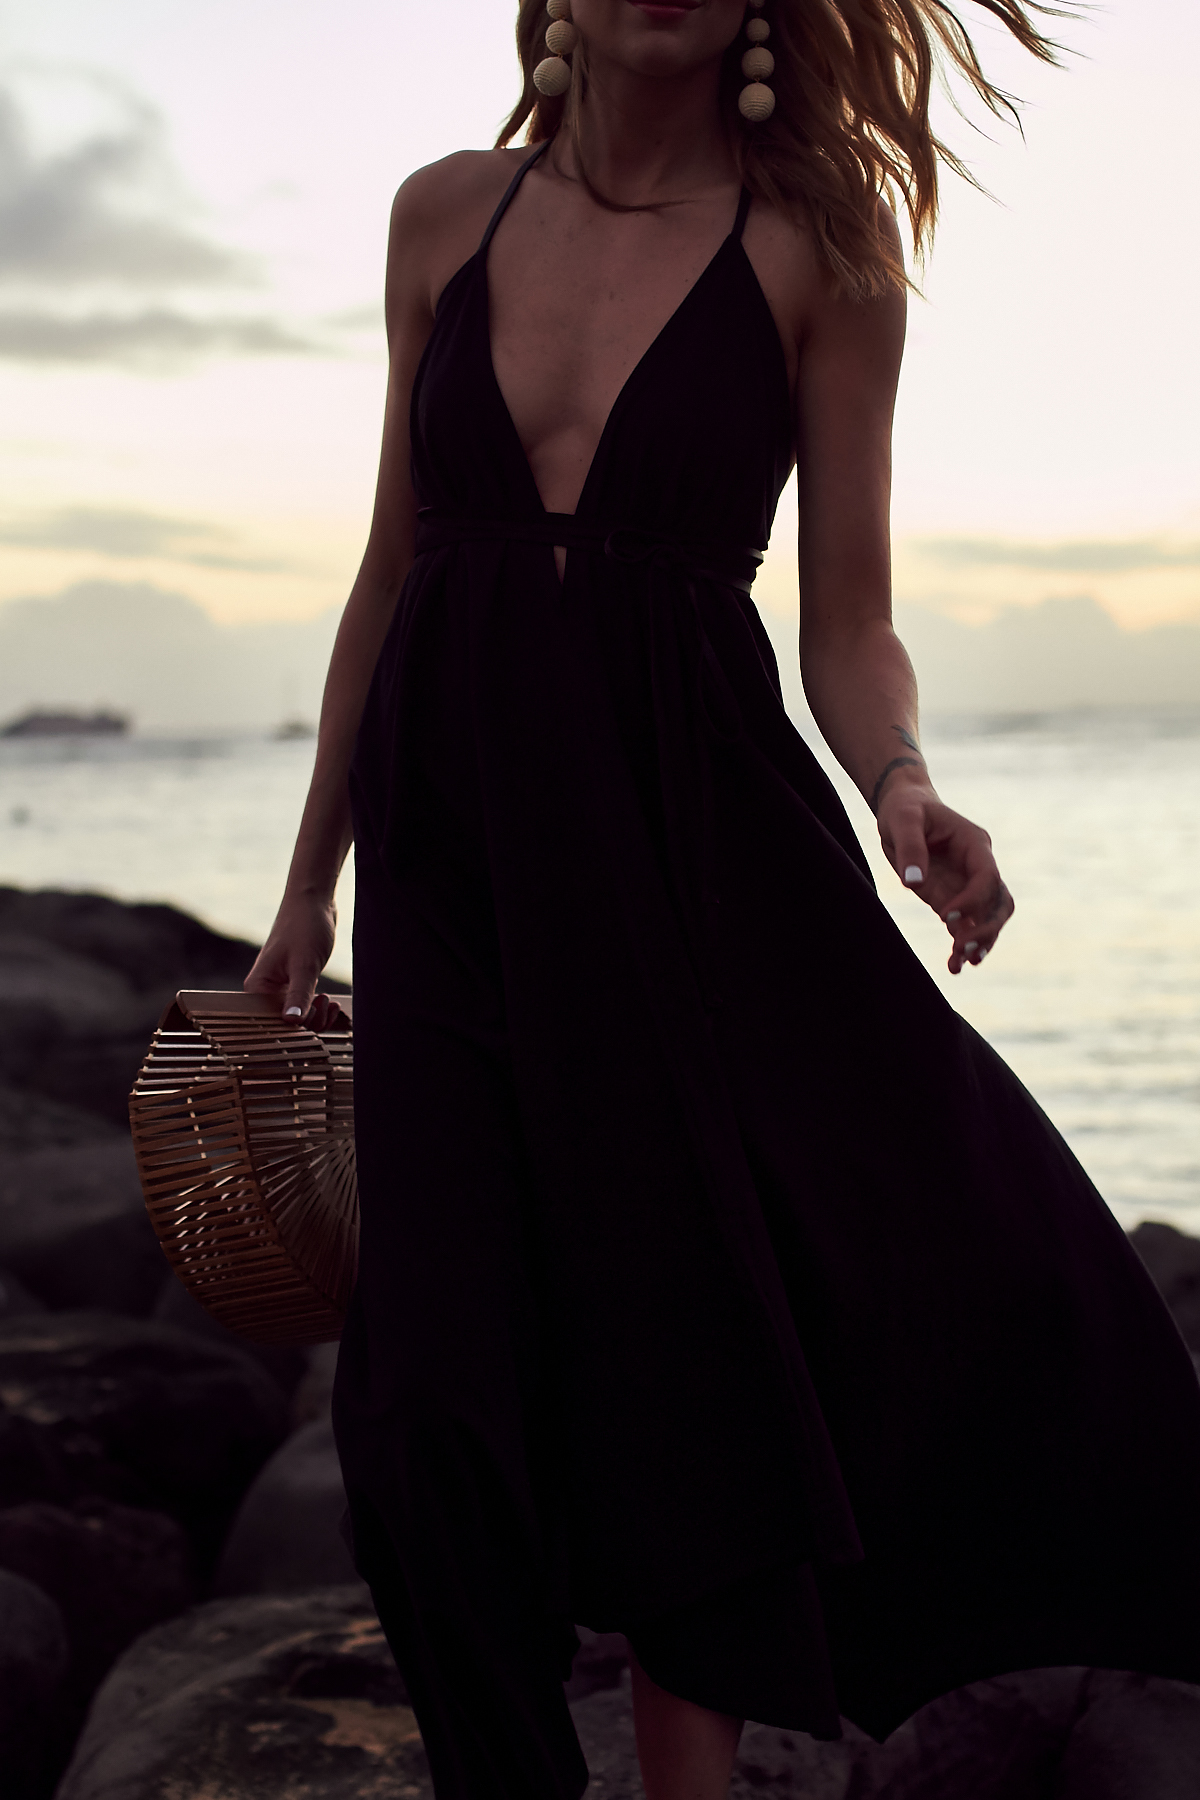 Caravana Black Maxi Dress, Hawaii, Oahu, Waikiki Beach